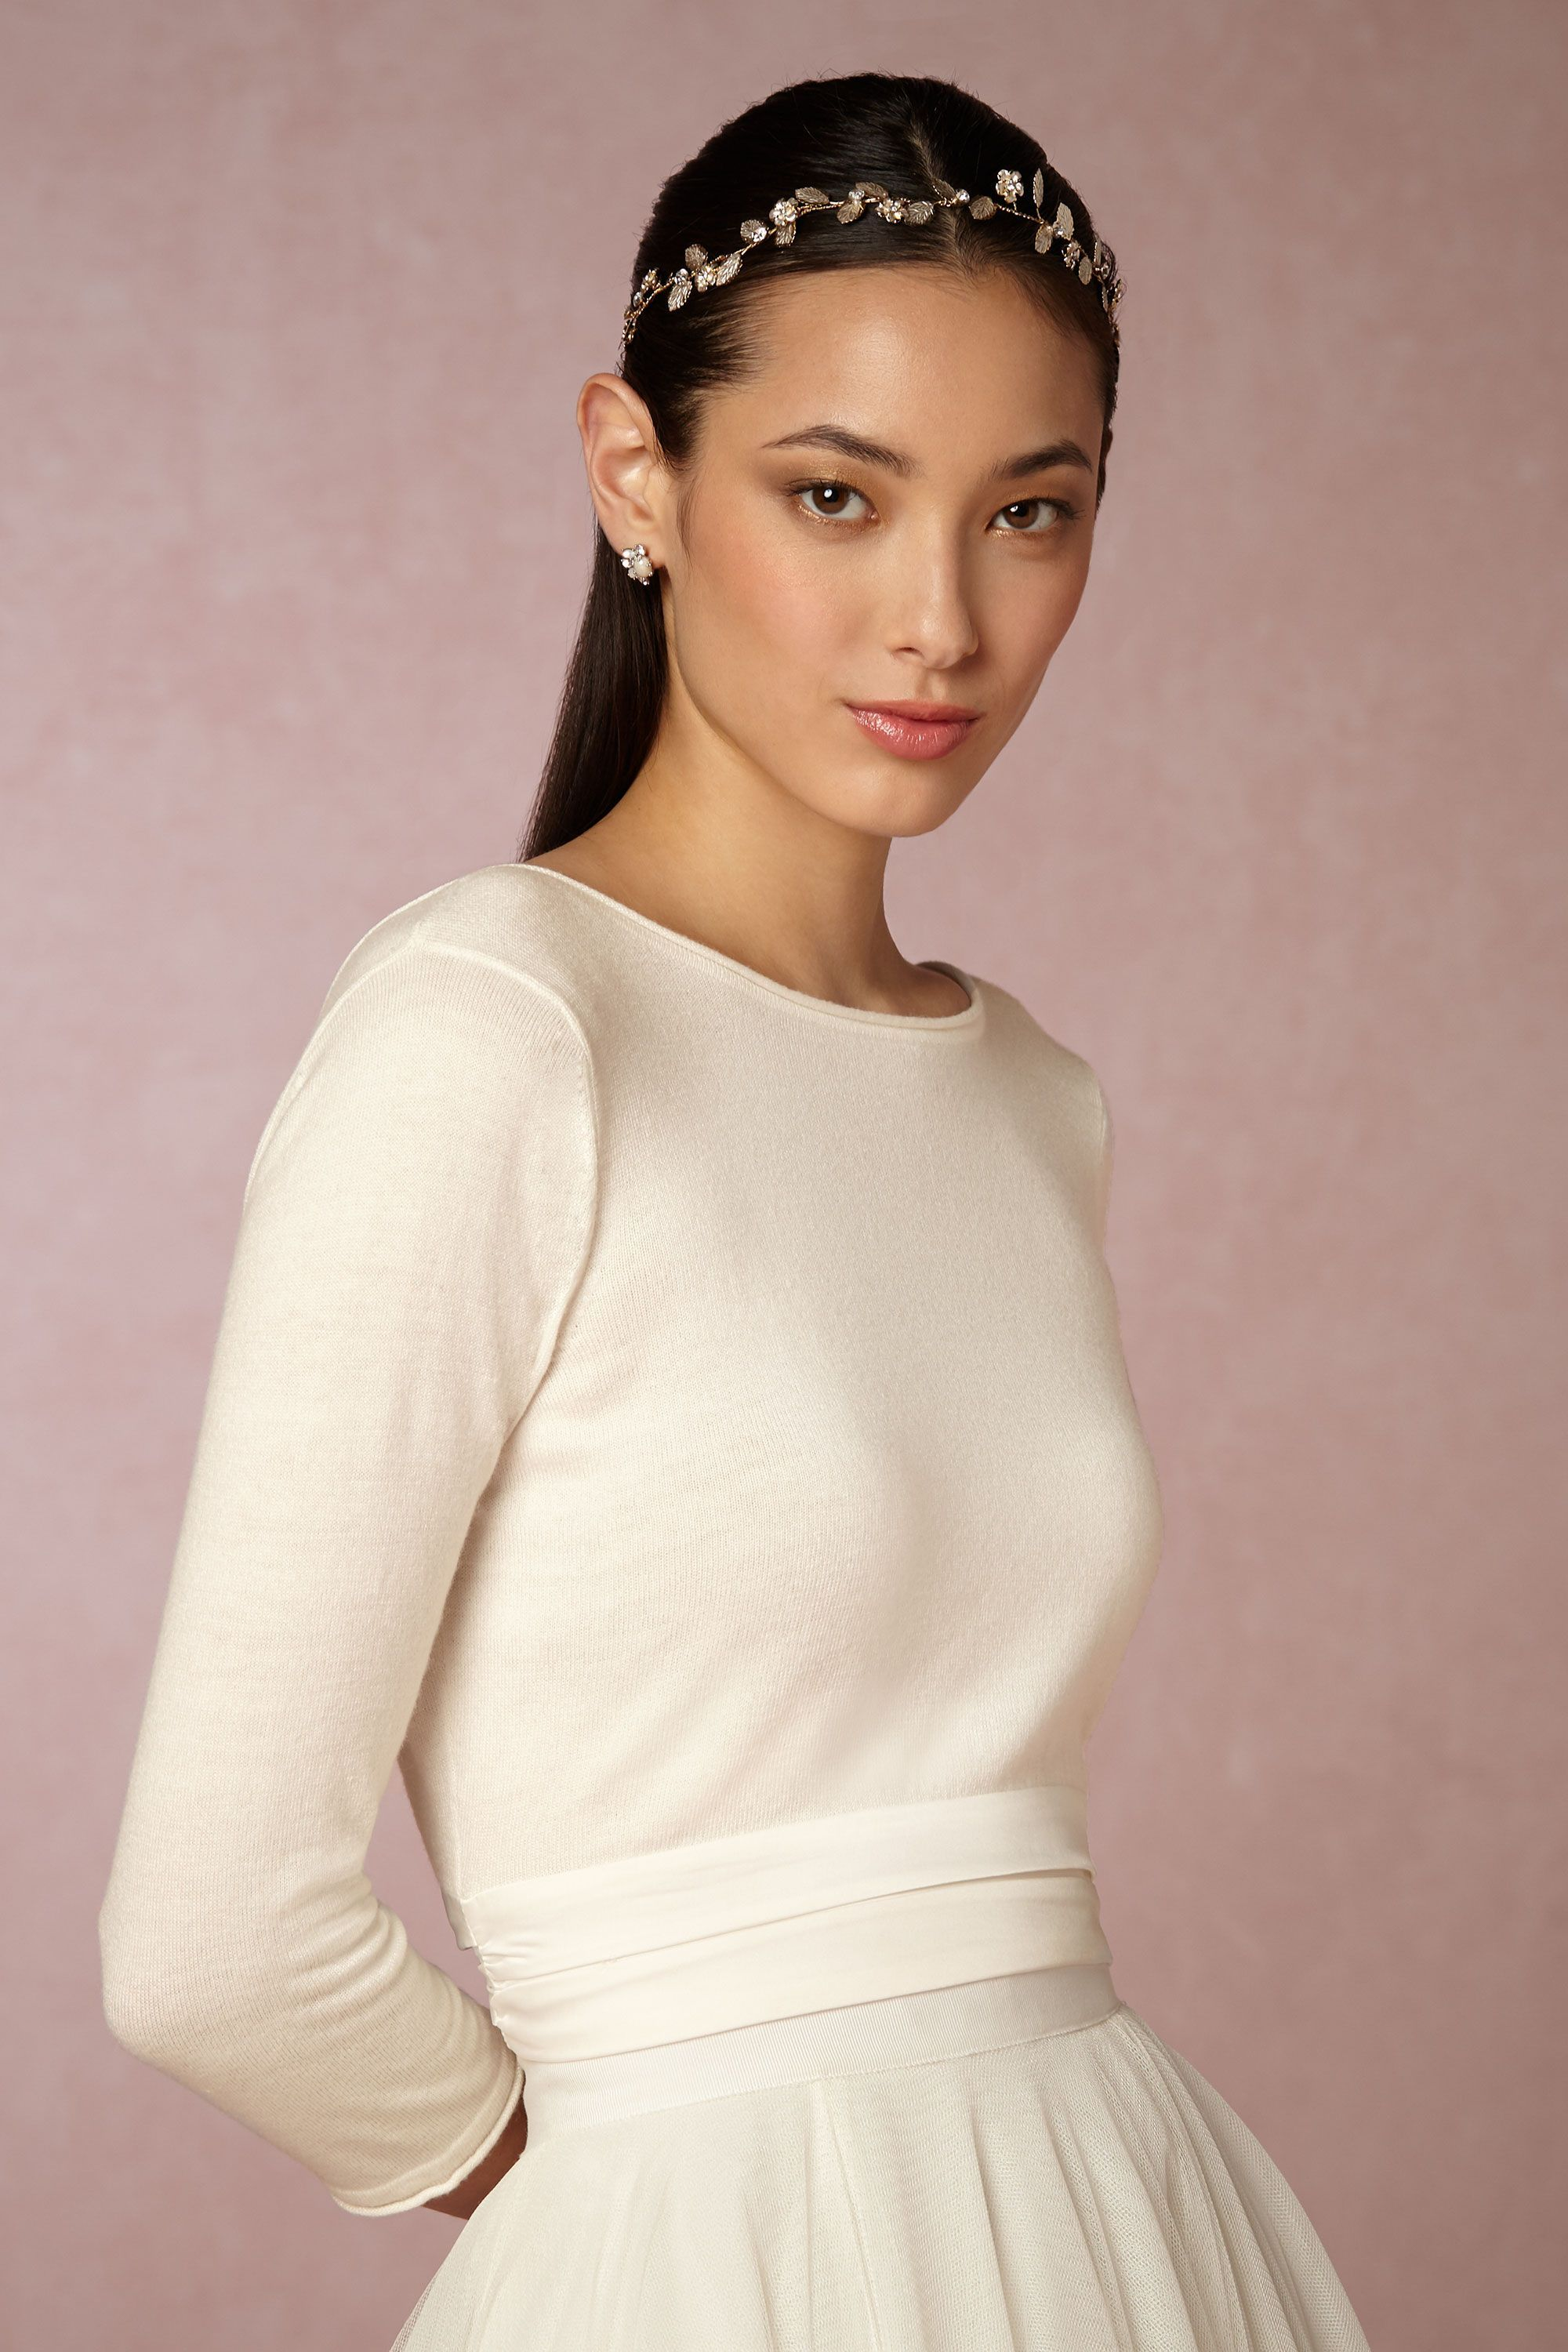 Agnes Sweater Wedding Dress Separates Wedding Sweater Top